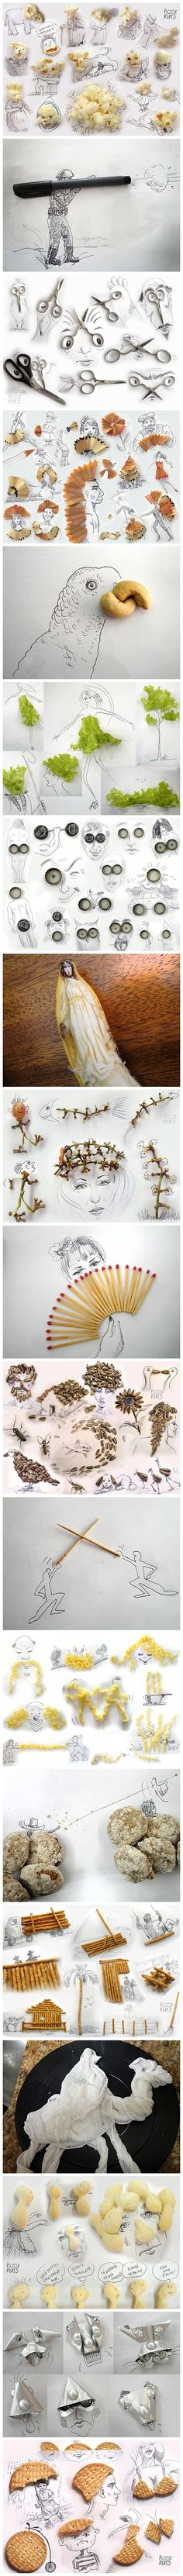 Victor Nunes will change the way you look at common-day things. Seriously, what a whimsical imagination he must have. Artist Victor Nunes turns everyday objects into sets of cute and quirky doodles.